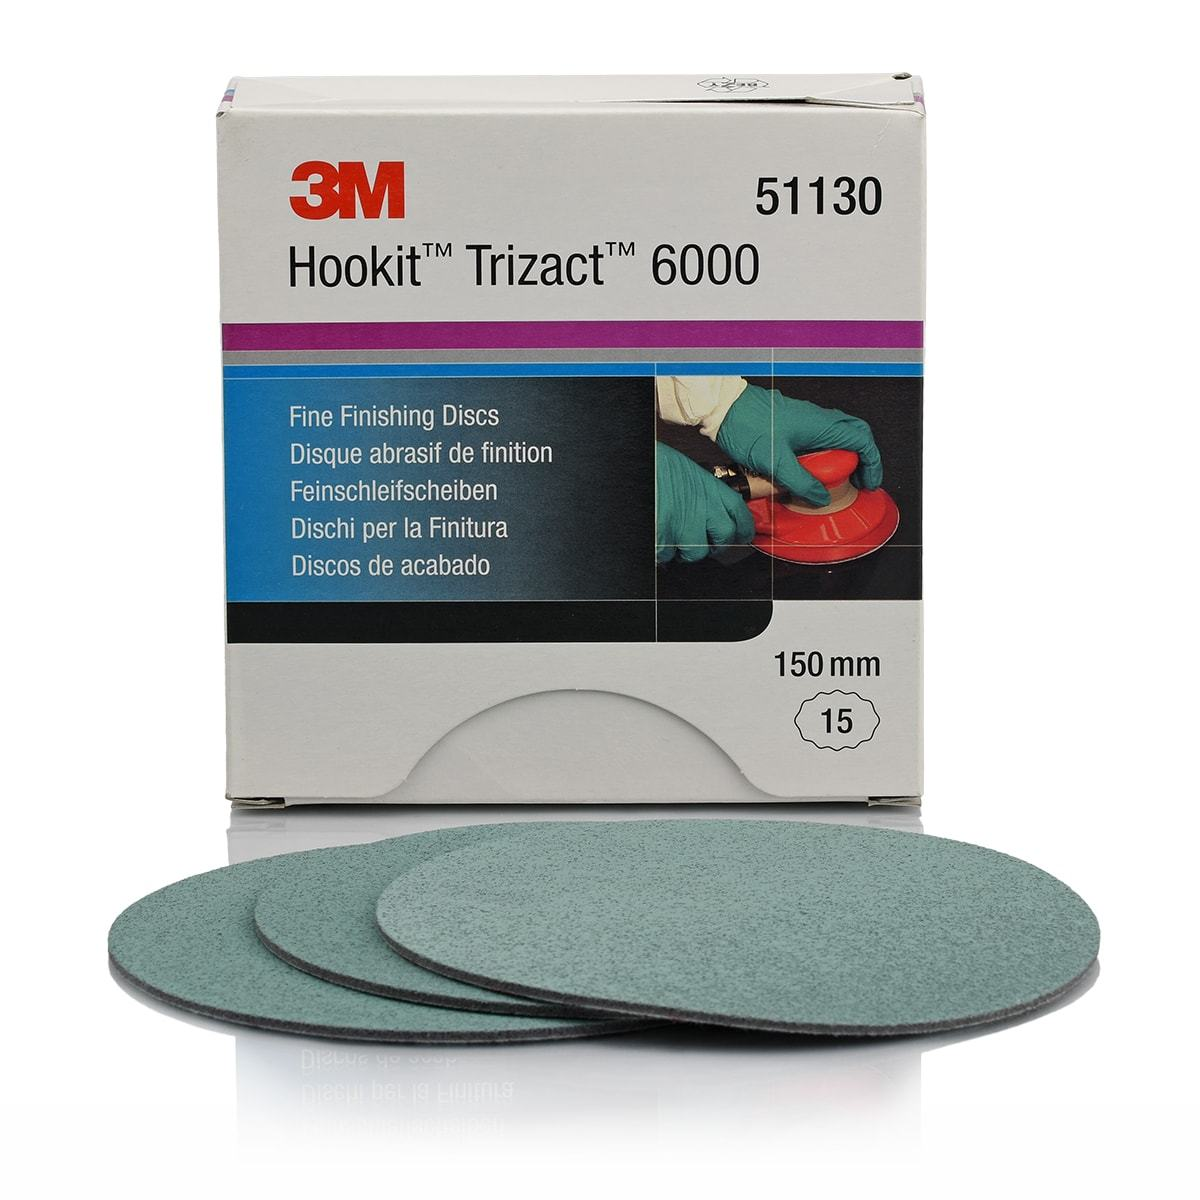 3M Trizact P6000 Fine Finishing Disc 150mm